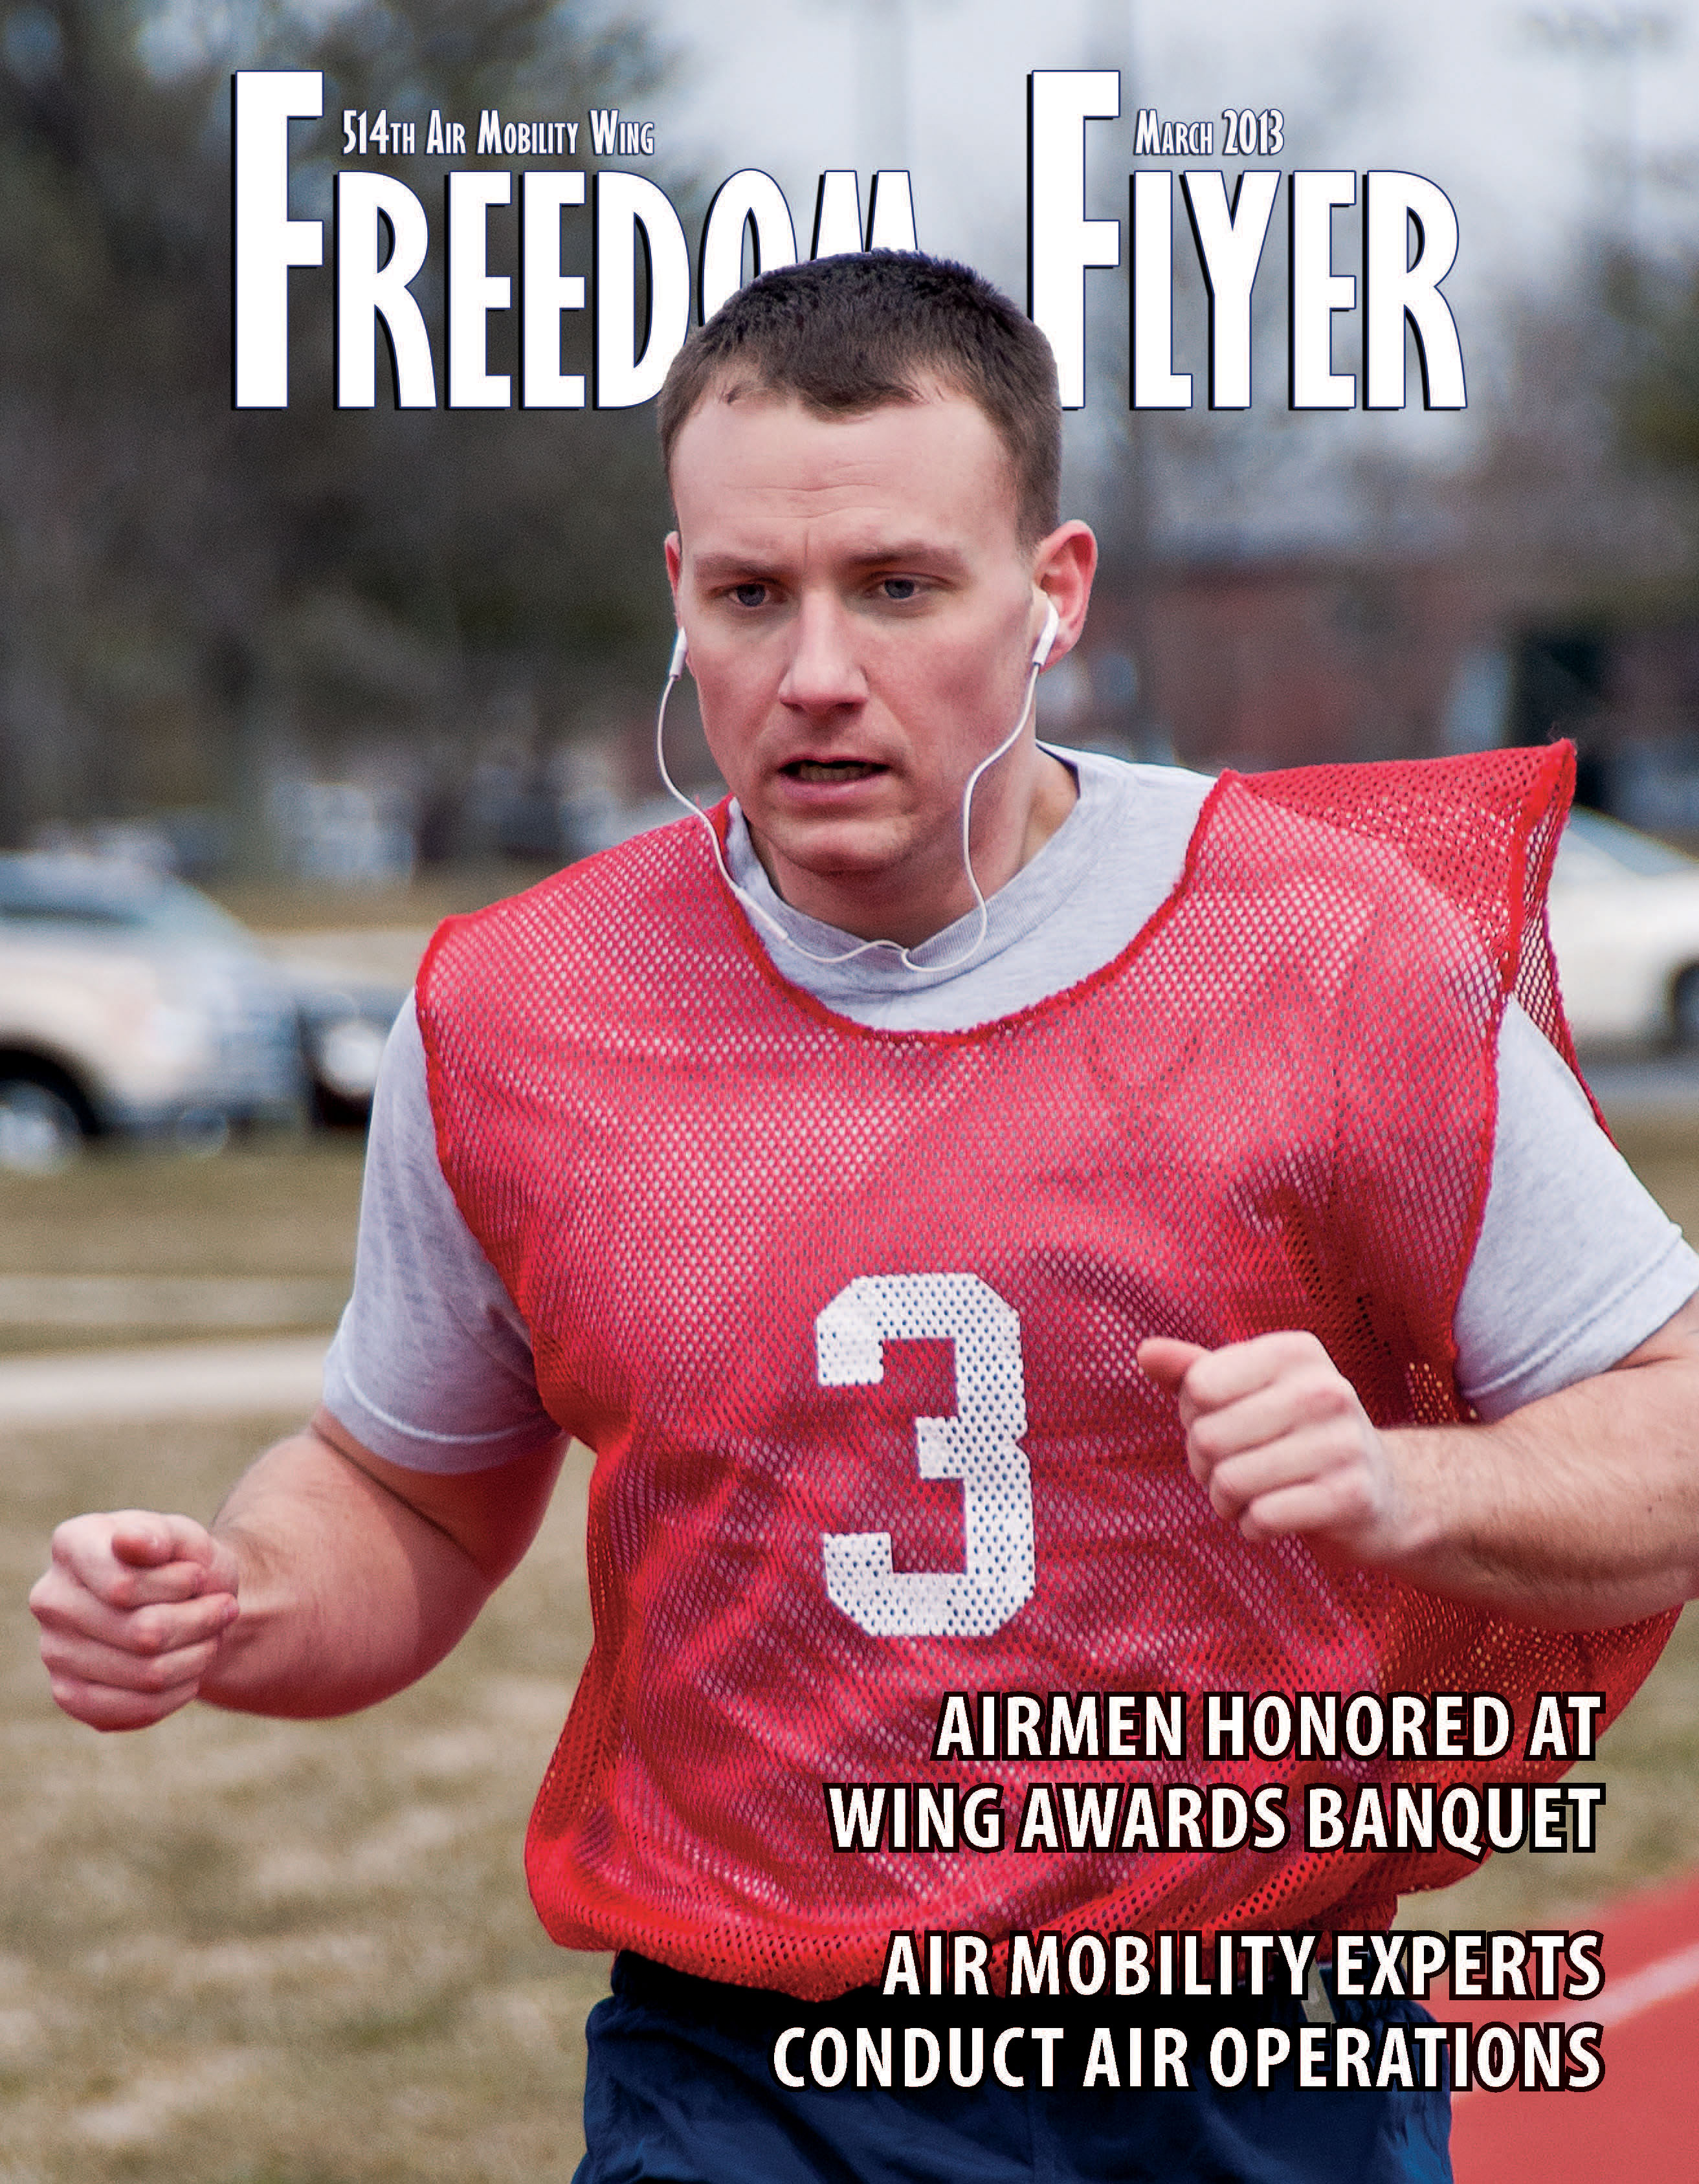 Freedom Flyer - March 2013